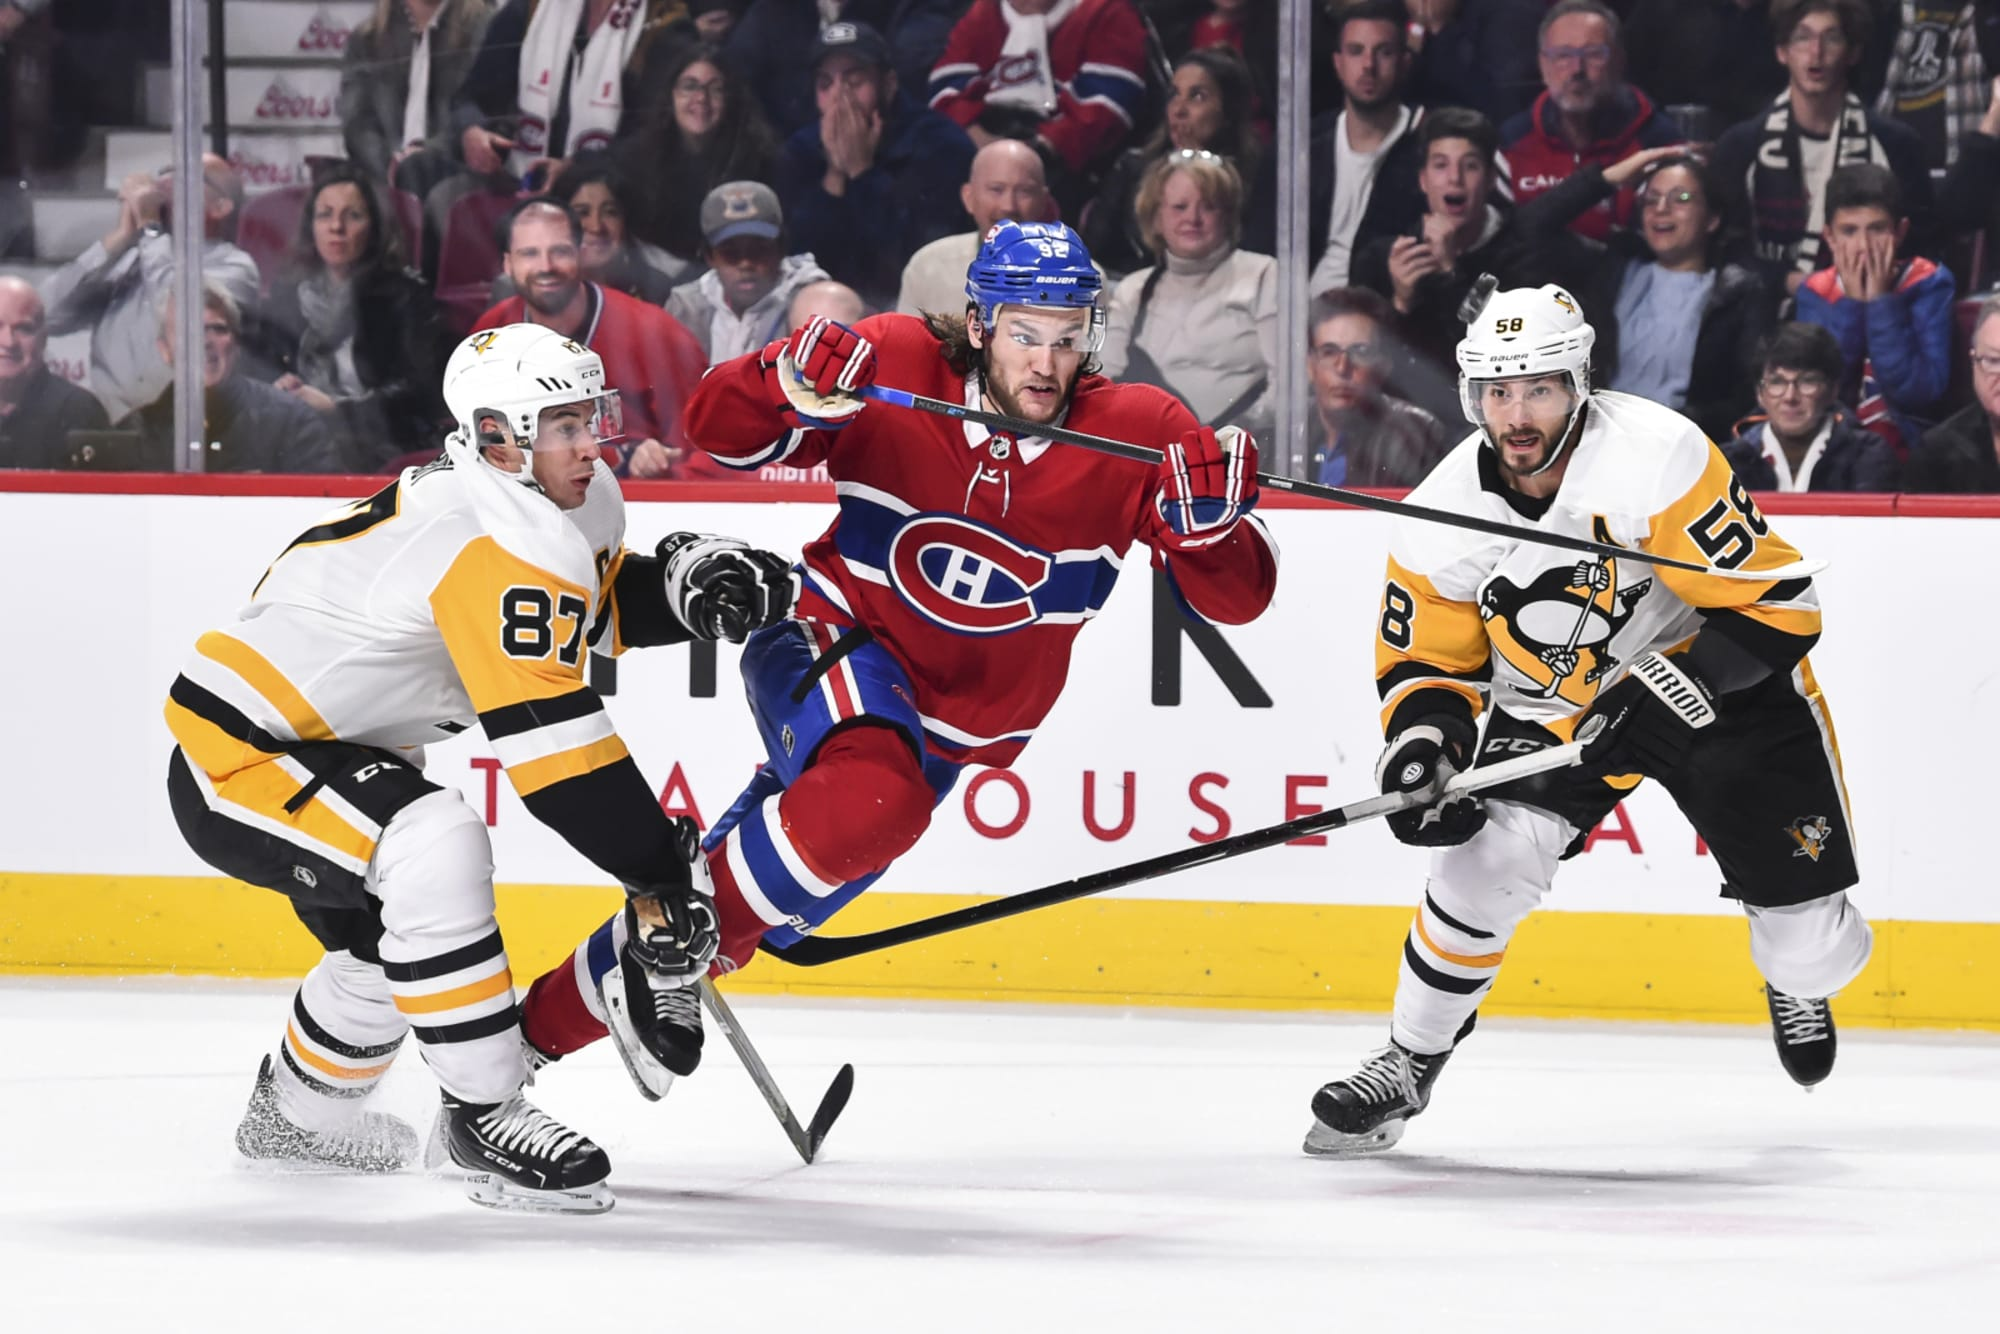 Canadiens Latest Rumours Has Habs Facing Penguins In Playoffs